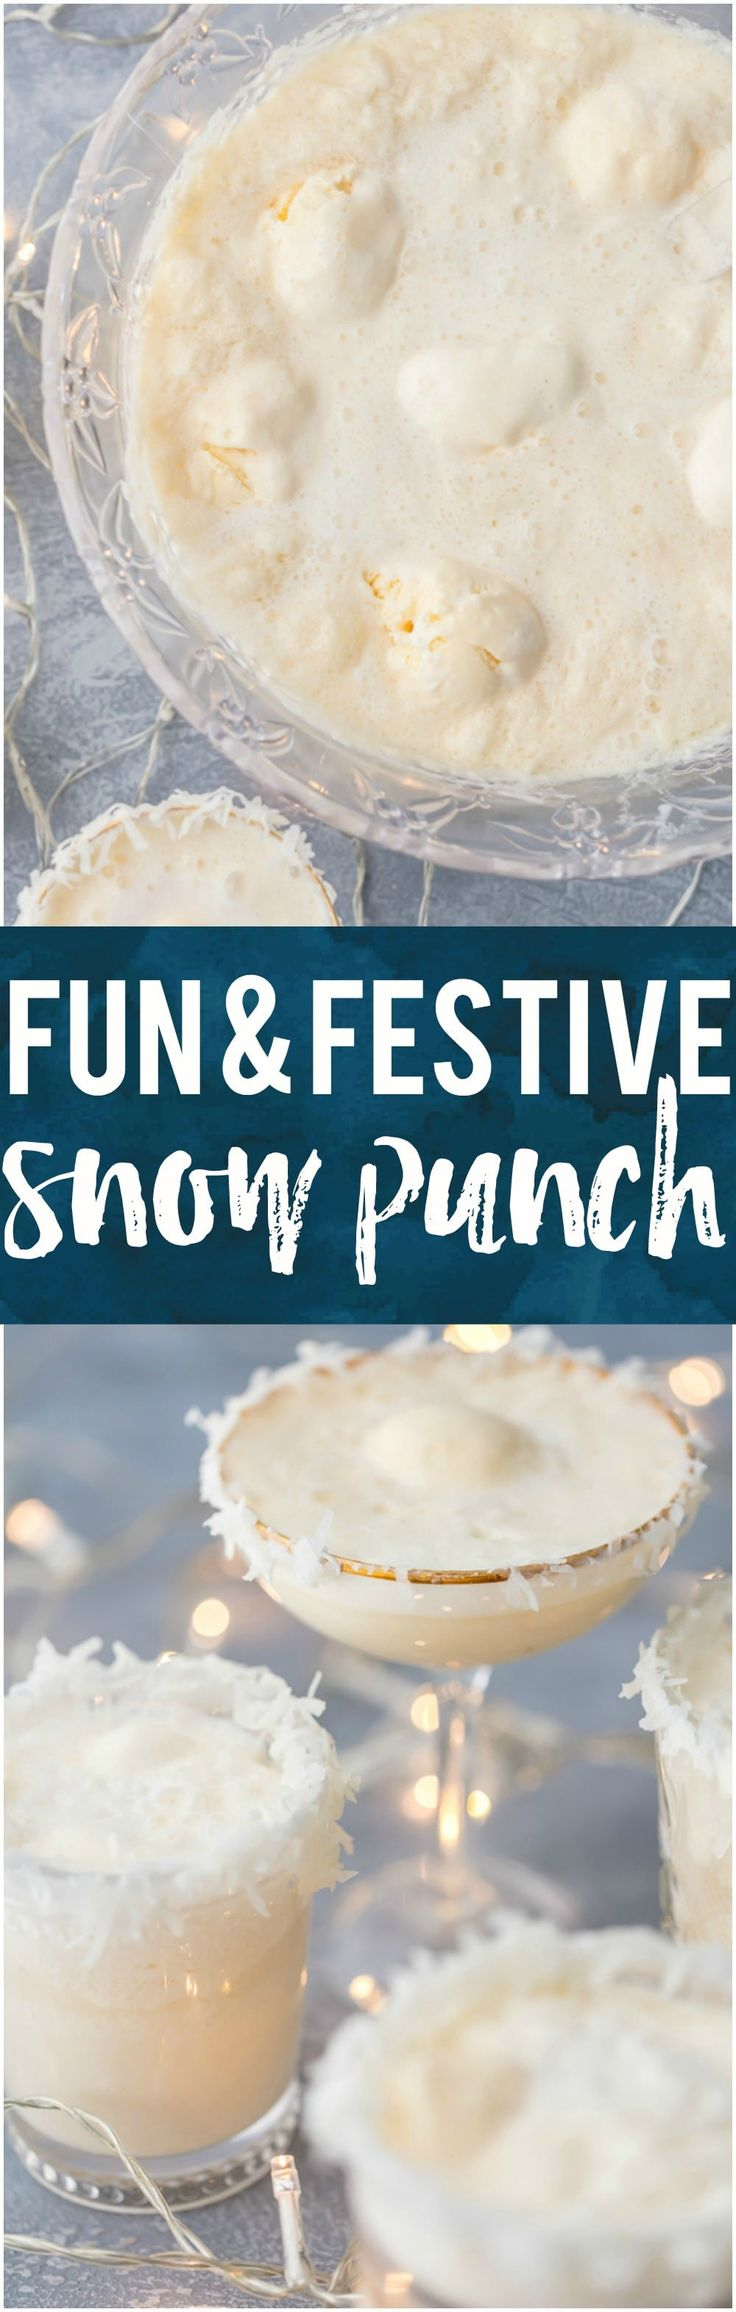 This fun and festive SNOW PUNCH is our favorite non-alcoholic beverage to make around the holidays. Christmas wouldn't be complete without this delicious mocktail loved by kids and adults alike! SO PRETTY! #mocktail #christmas #holiday #punch #cheers via @beckygallhardin